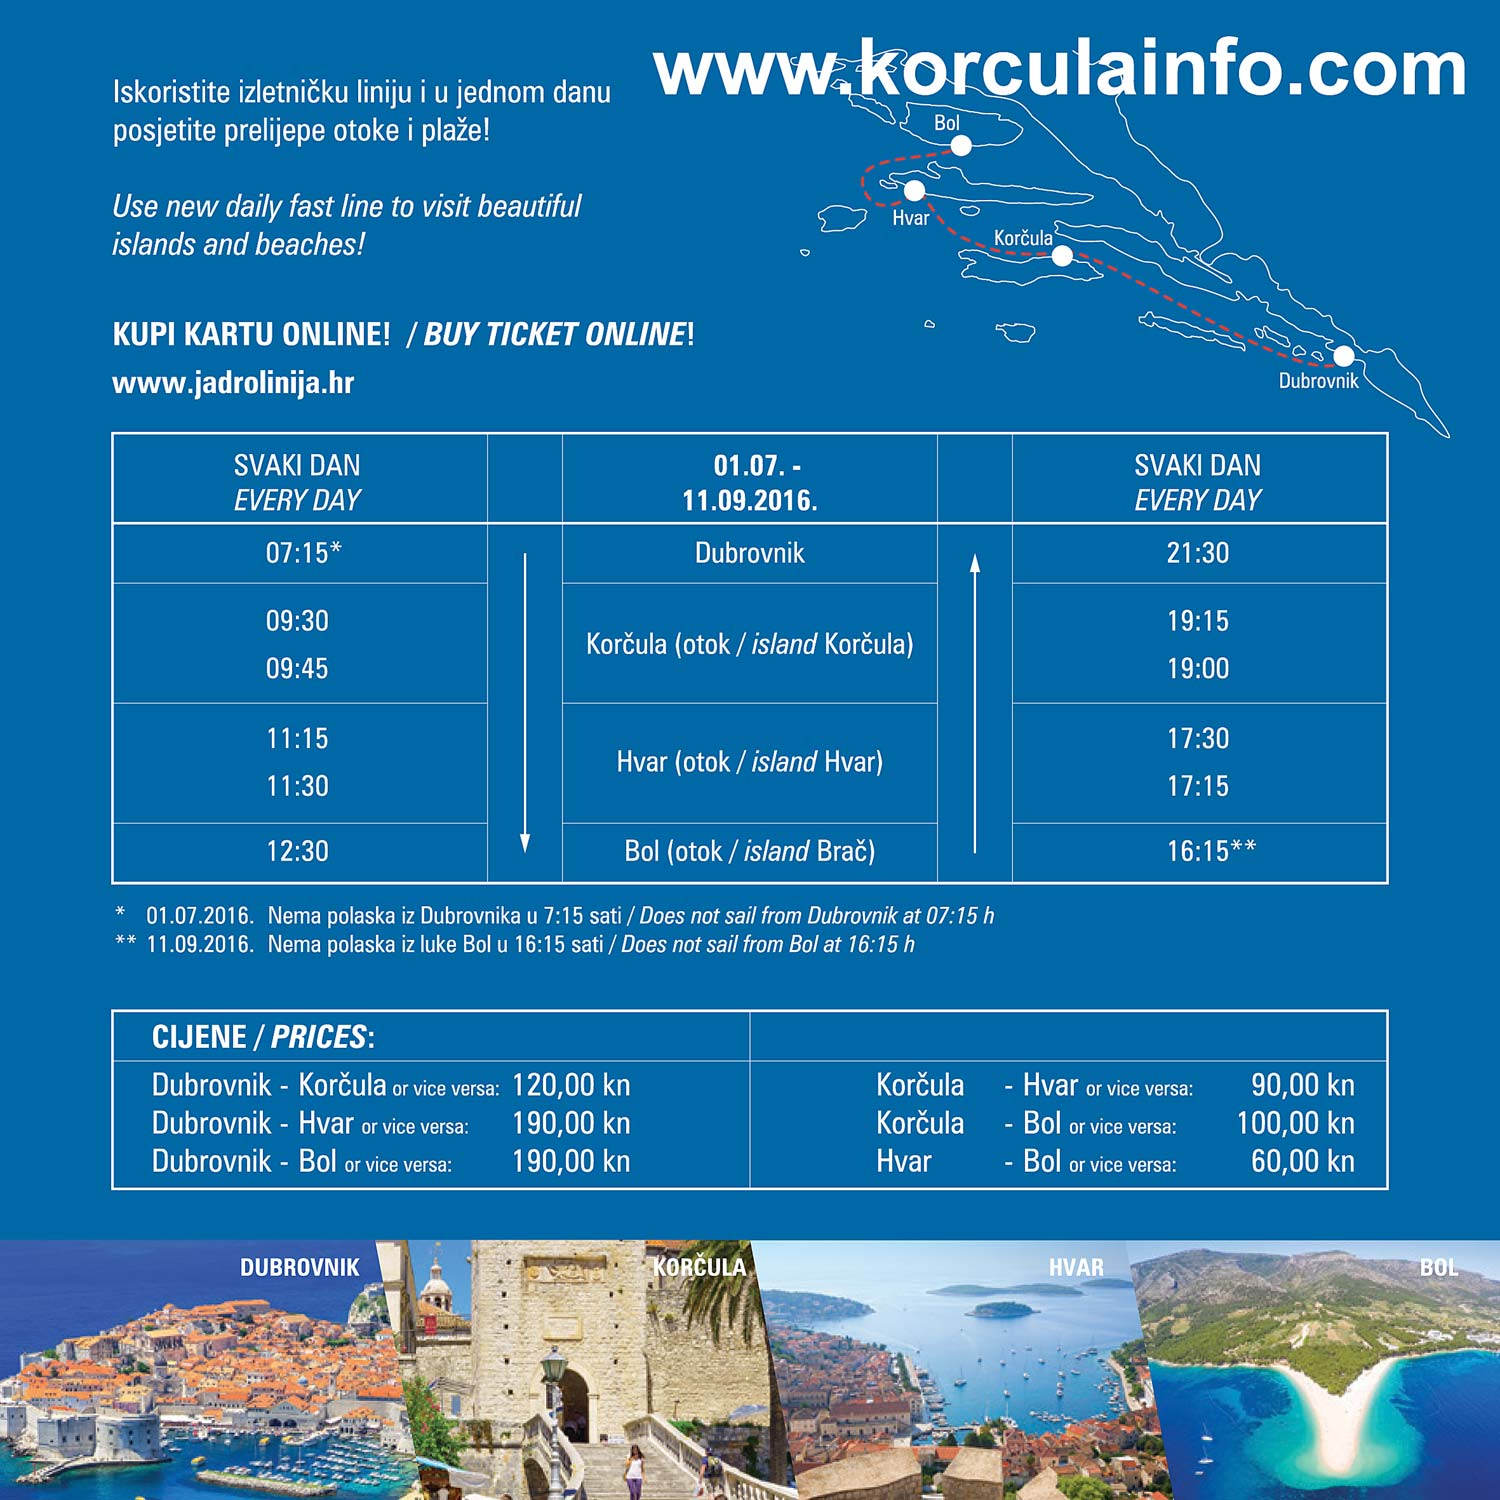 how to get to dubrovnik from hvar